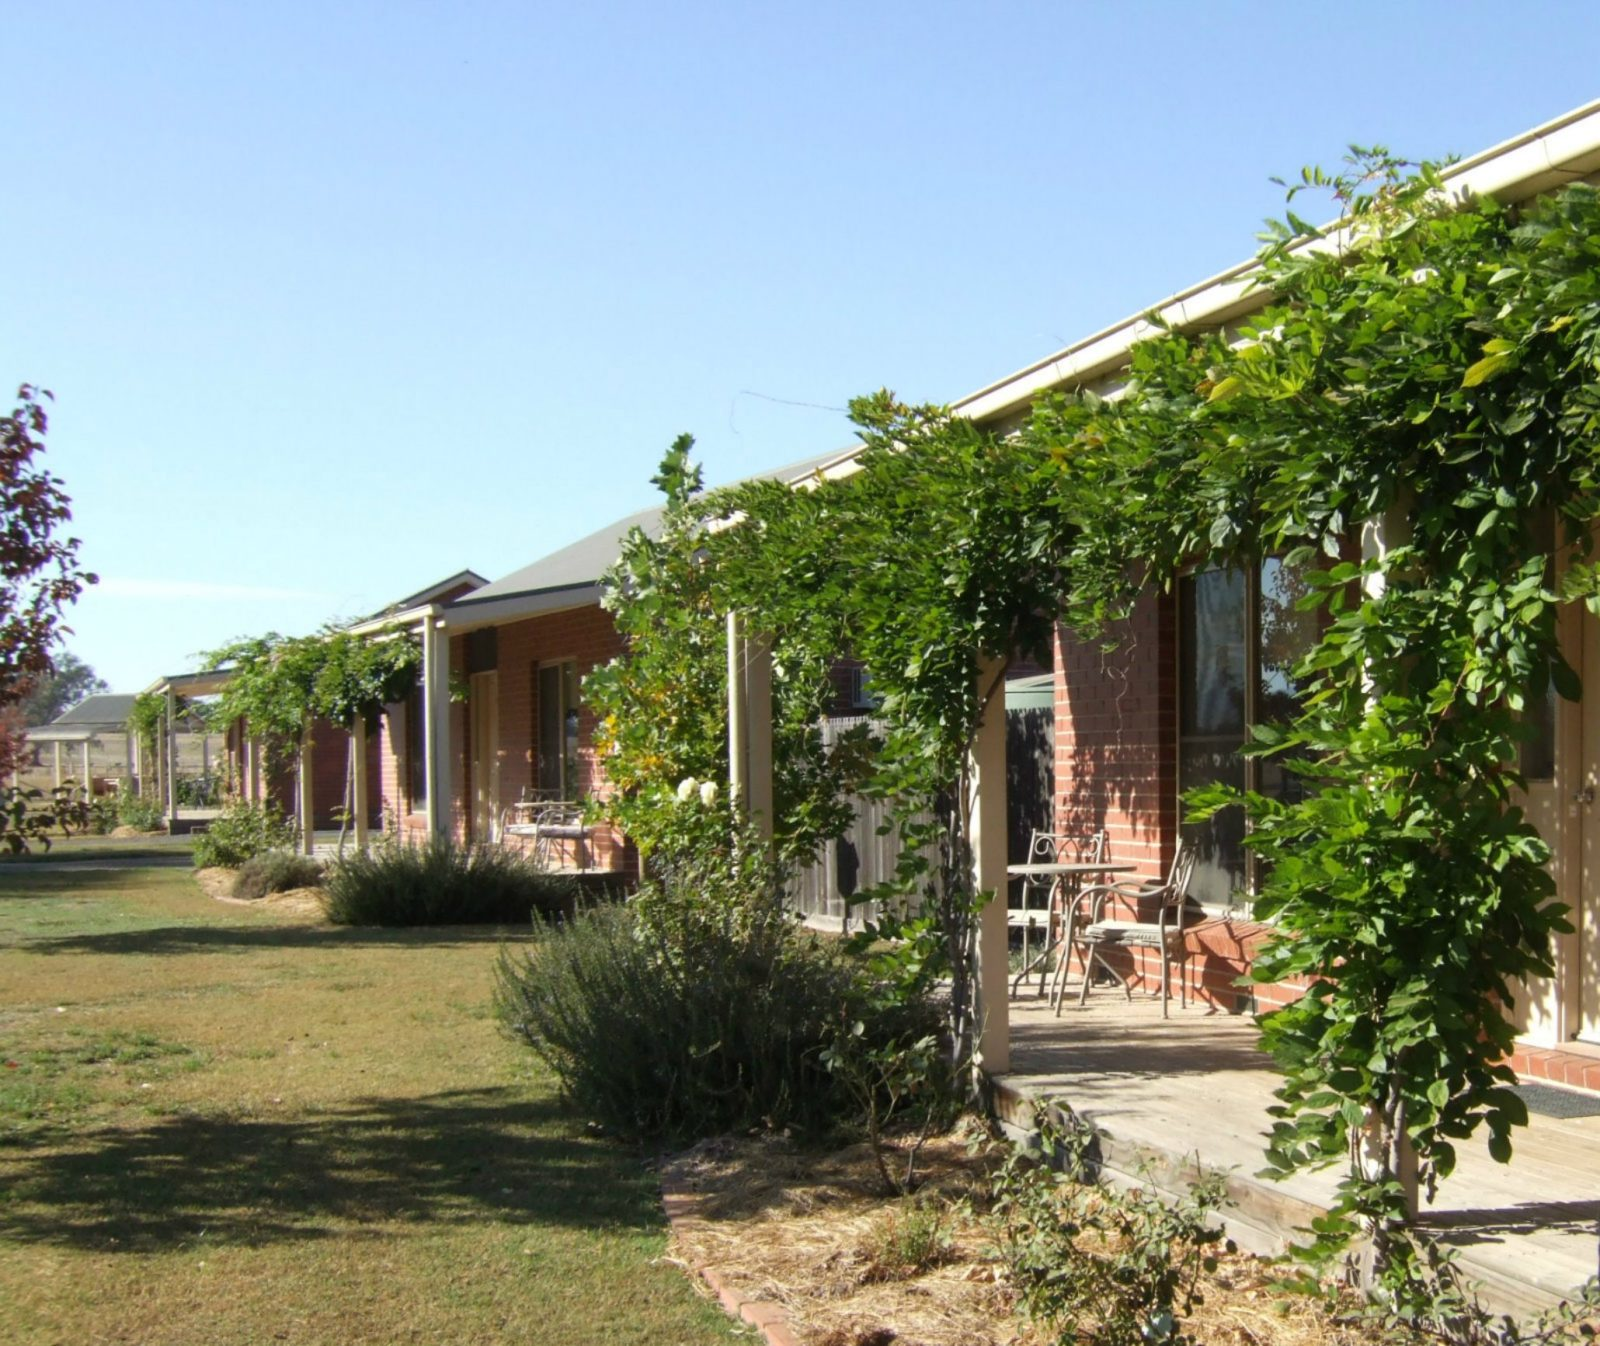 Face View of Cottages